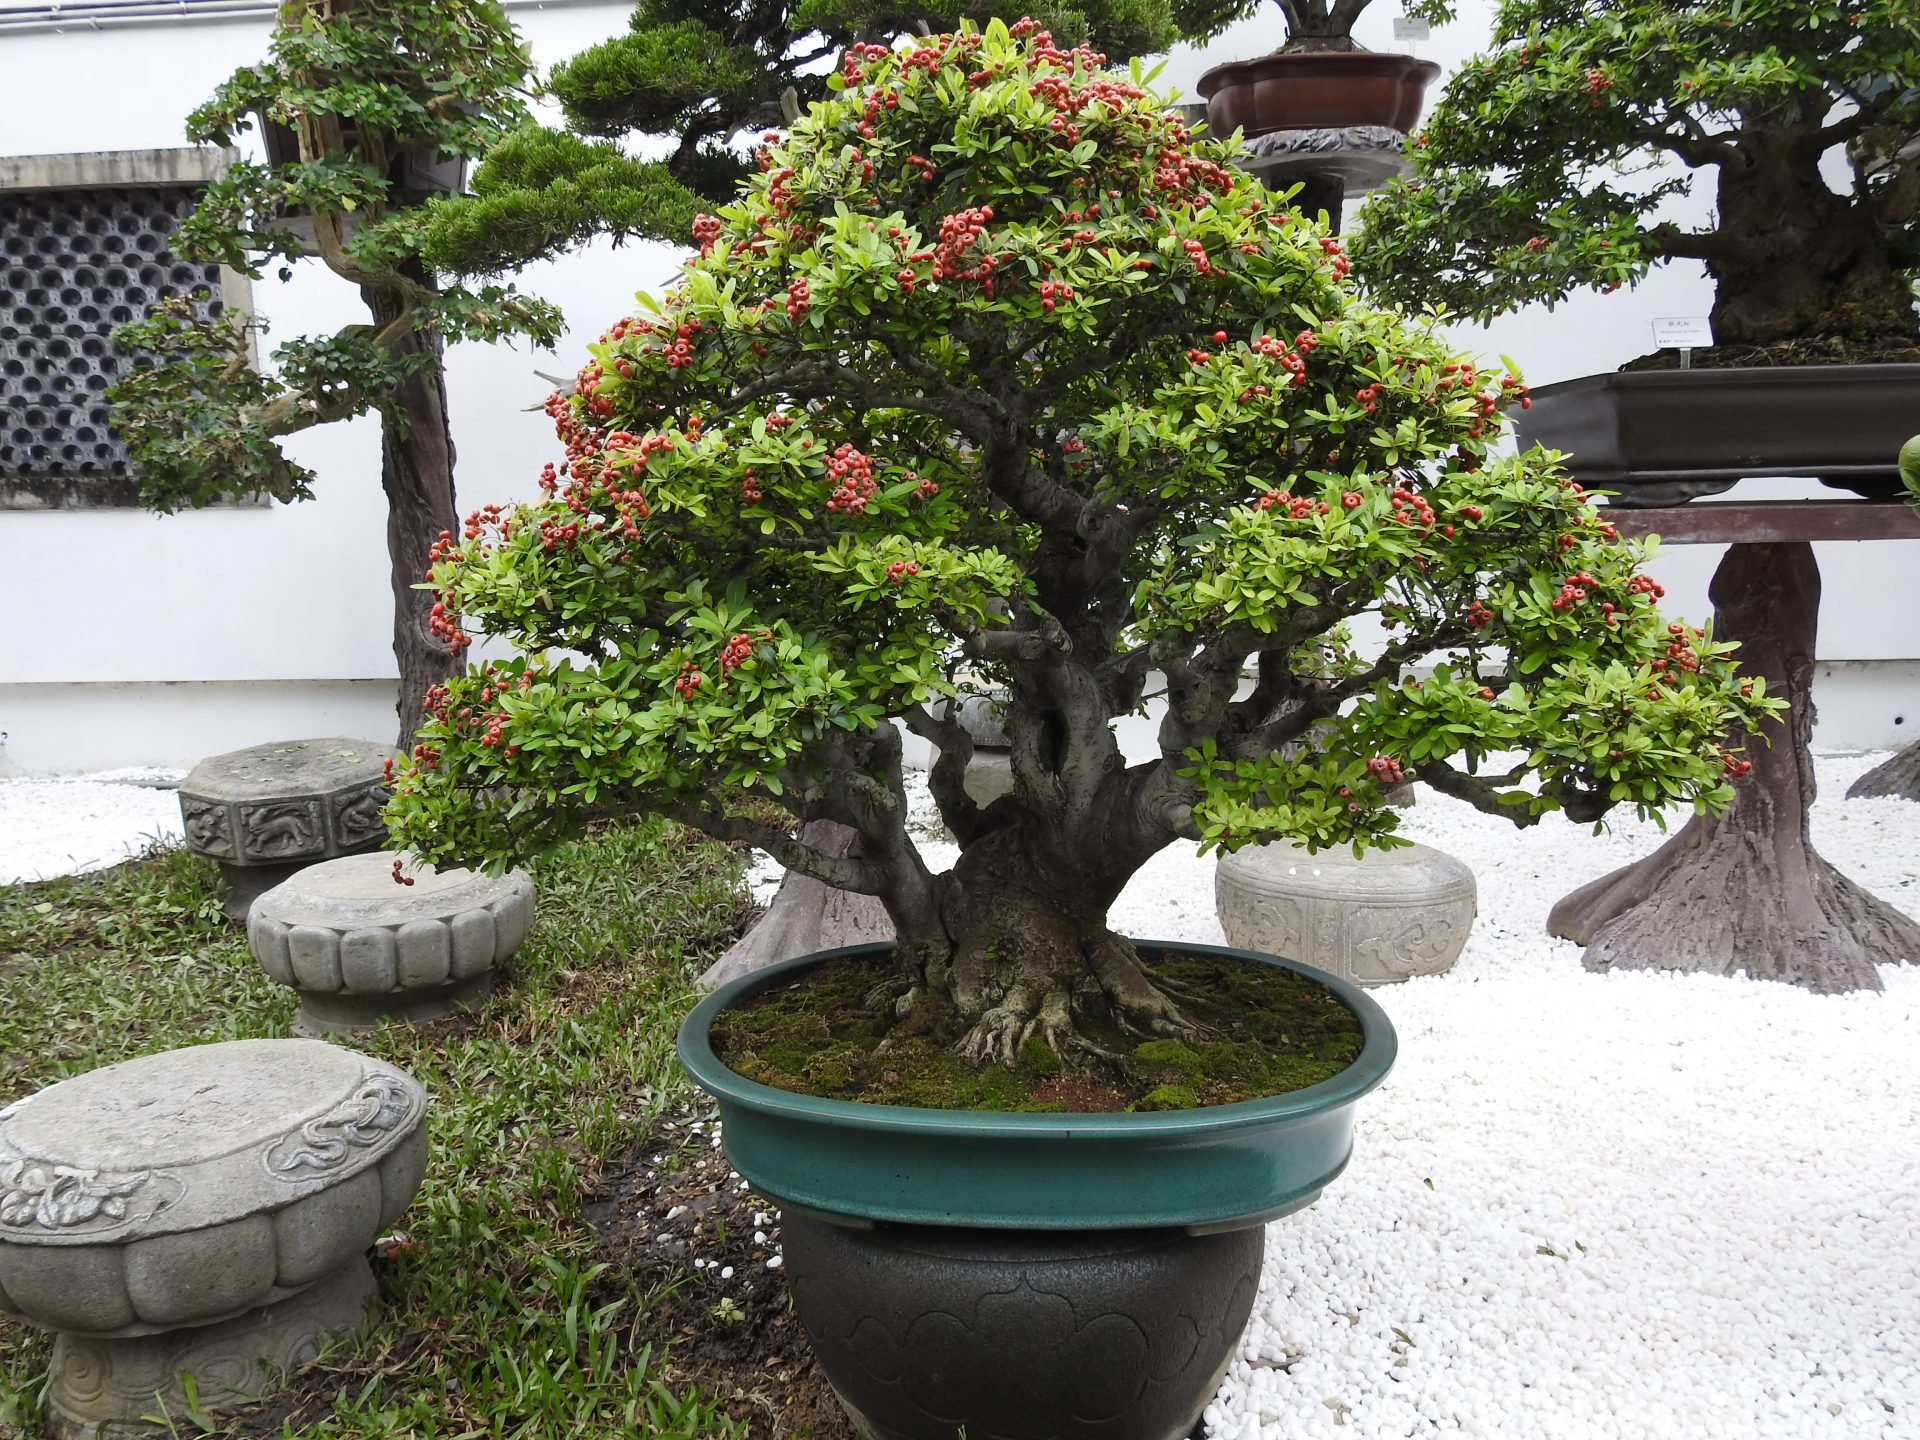 One of the bonsai trees in Amy Liang Bonsai Museum in Taipei (Image: Billy Shyu/ Vision Times)